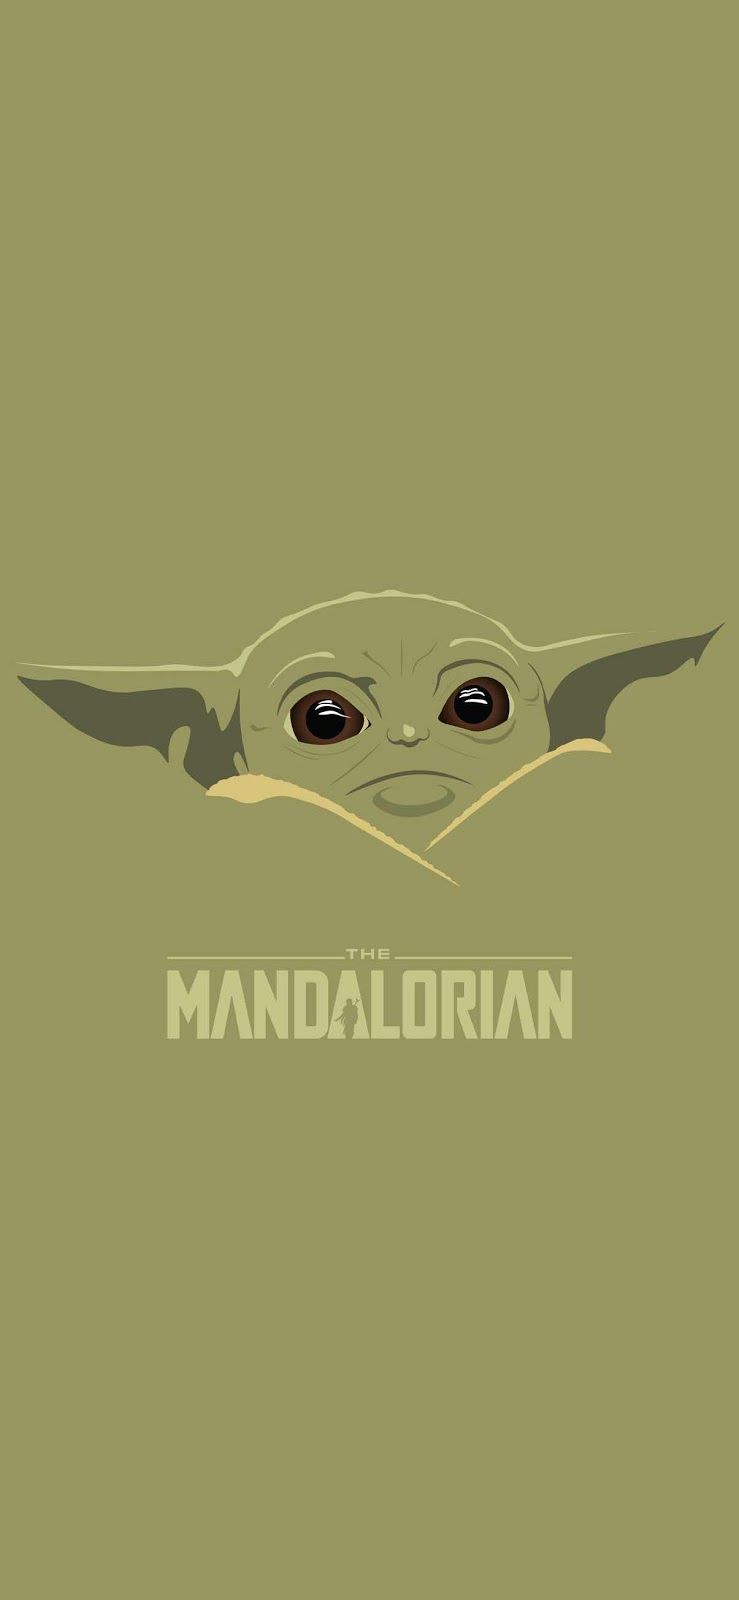 Iphone And Android Wallpapers Baby Yoda Star Wars Wallpaper For Iphone And Android Star Wars Wallpaper Yoda Wallpaper Star Wars Wallpaper Iphone